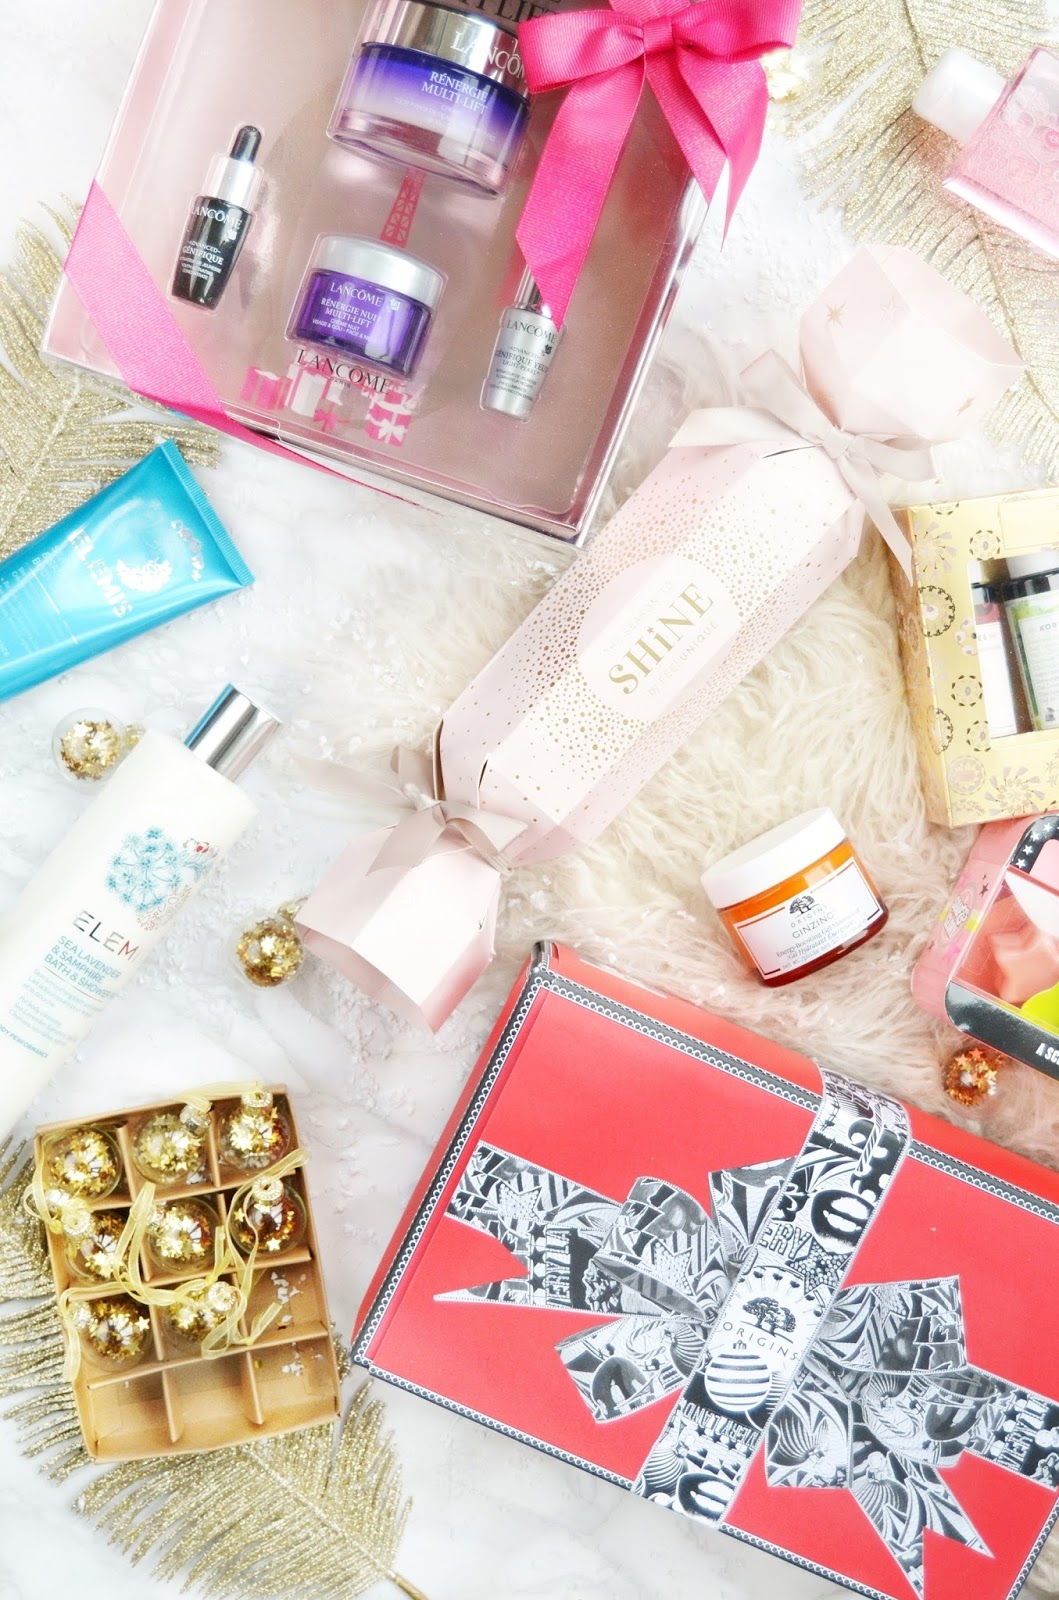 for my final instalment of this years christmas gift guide i thought i would share a few skincare and body care gifts the latter being pretty easy to buy